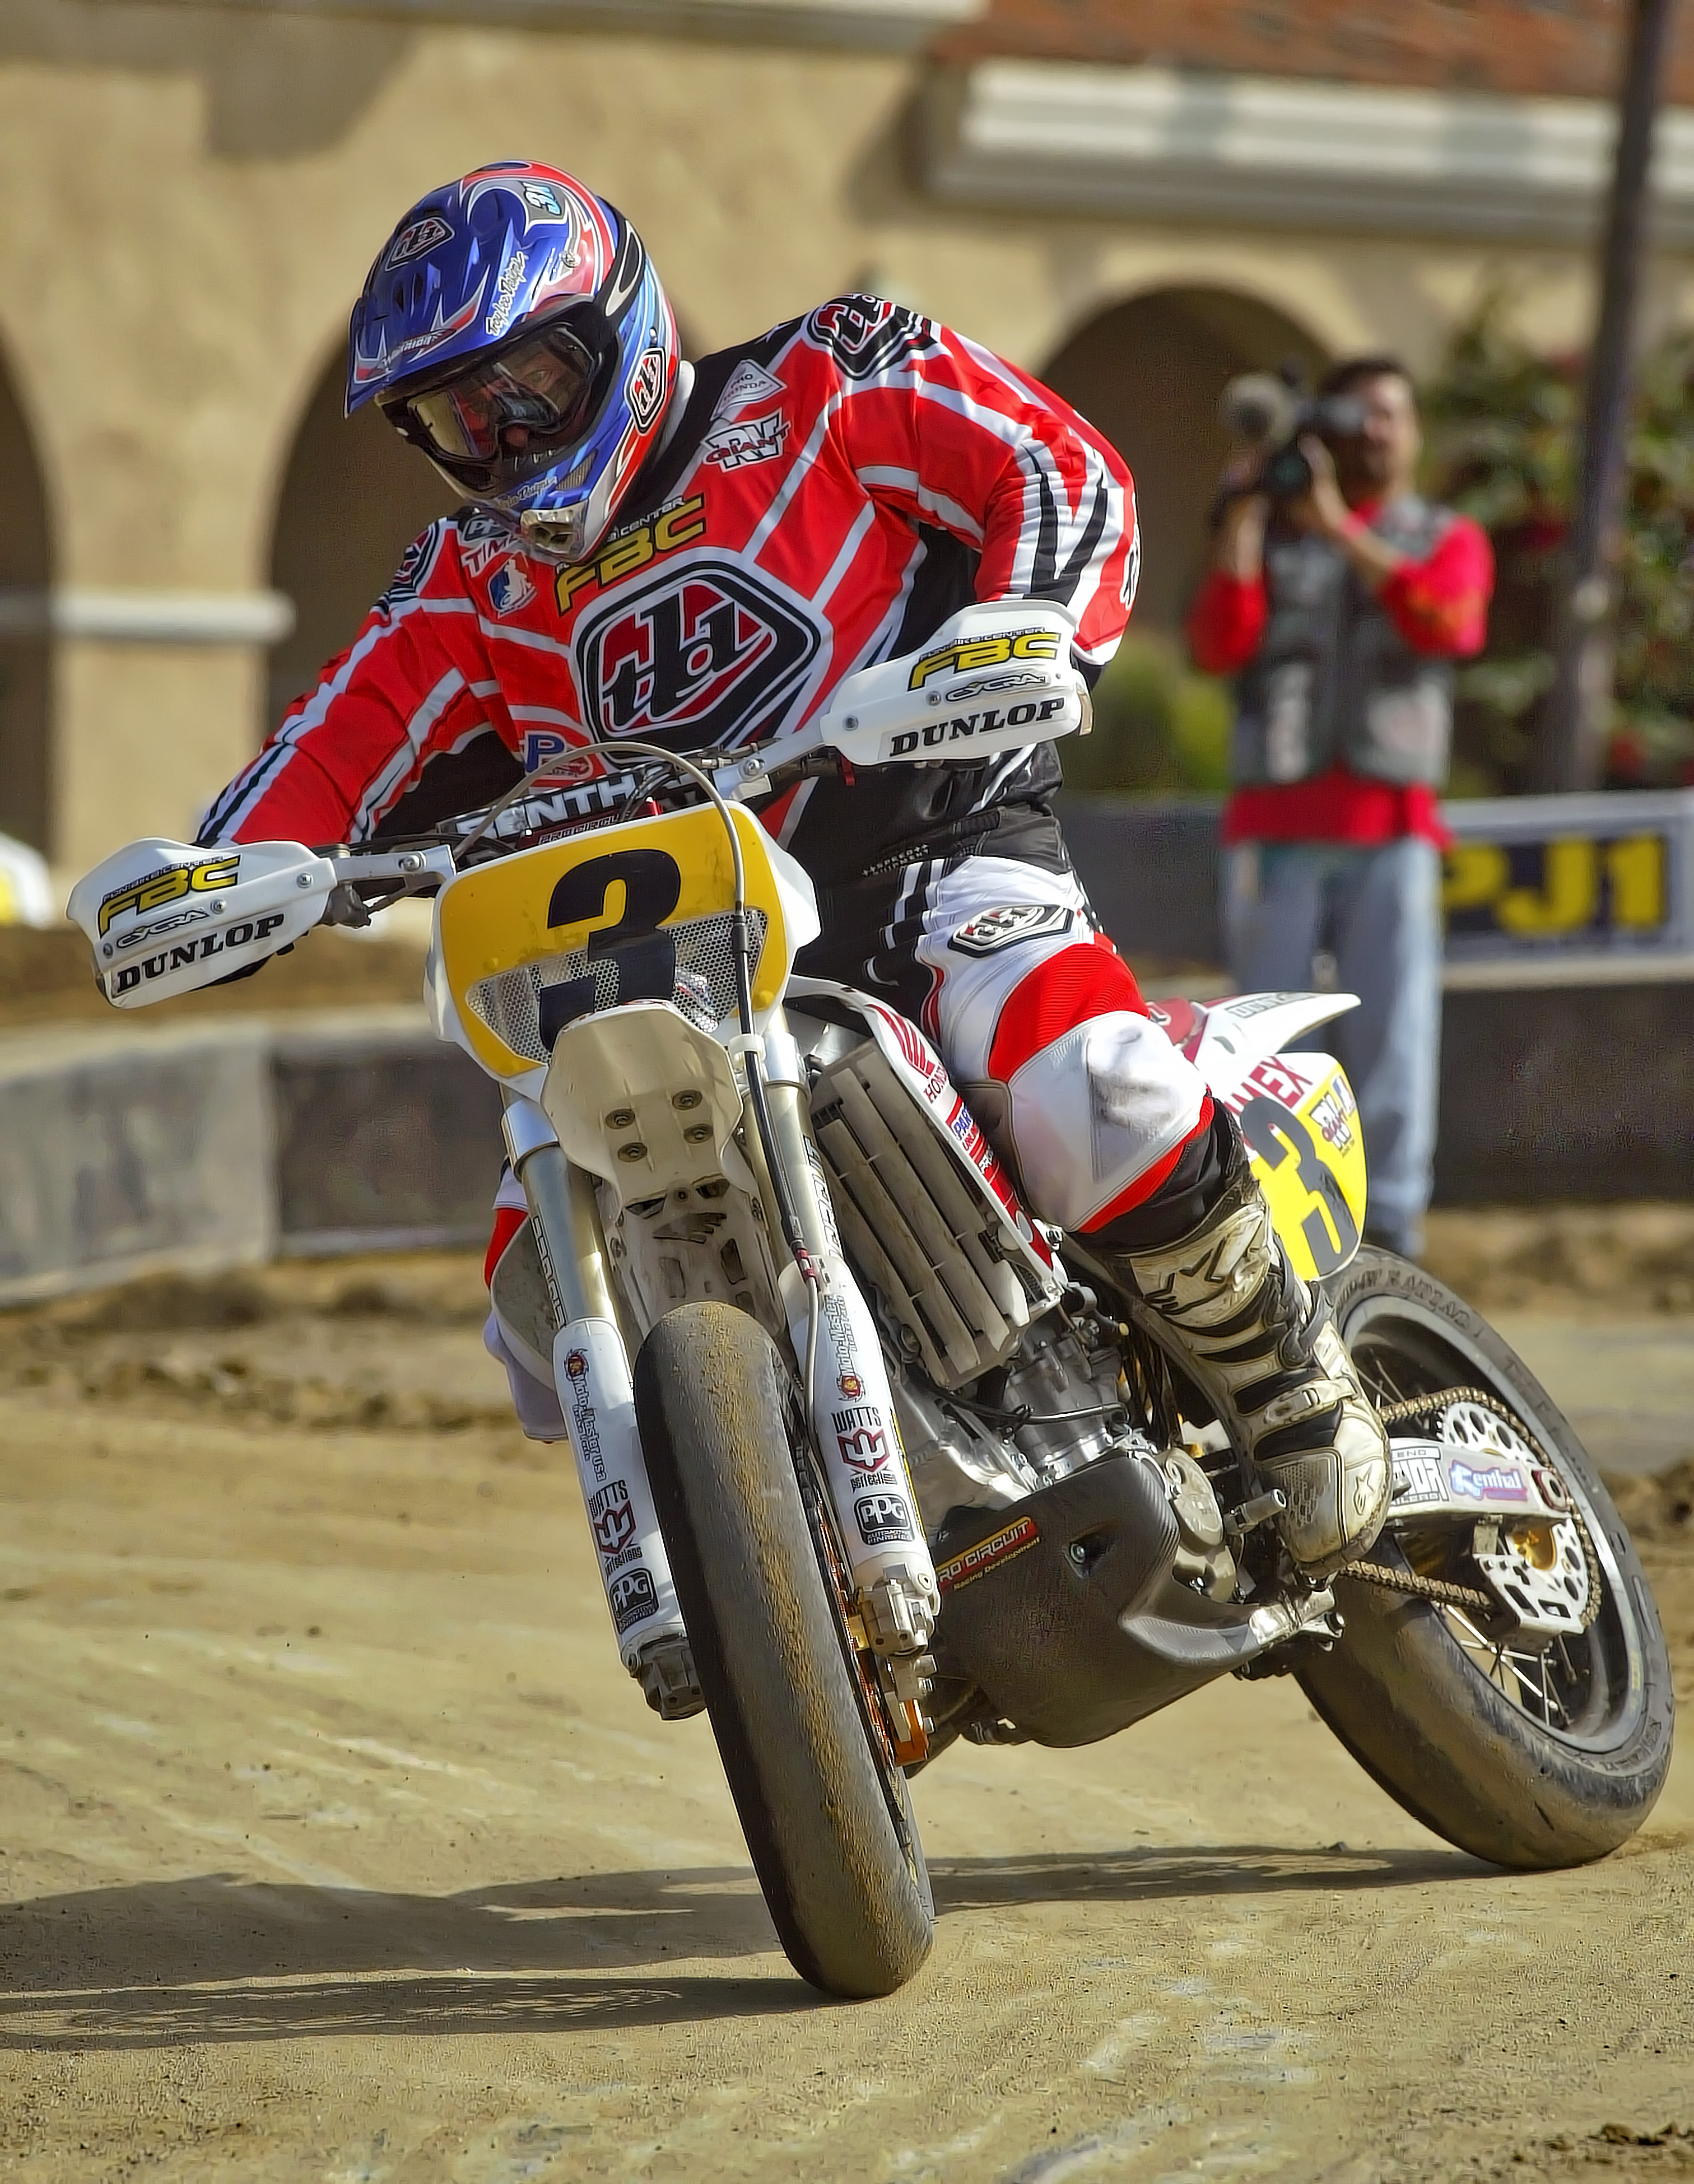 Jeff Ward - MX superstar